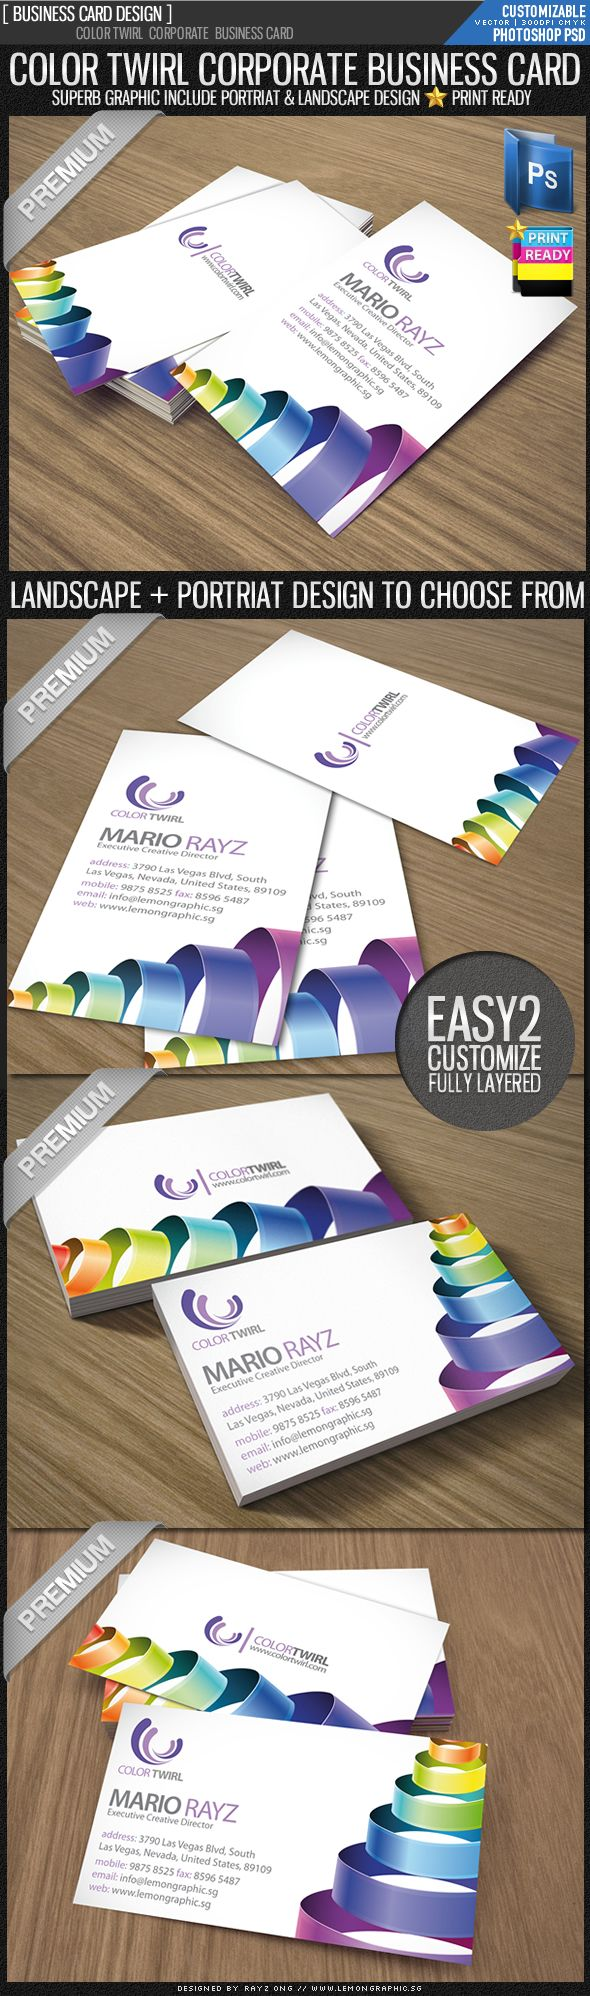 37 best Business Card Ideas images on Pinterest | Business cards ...